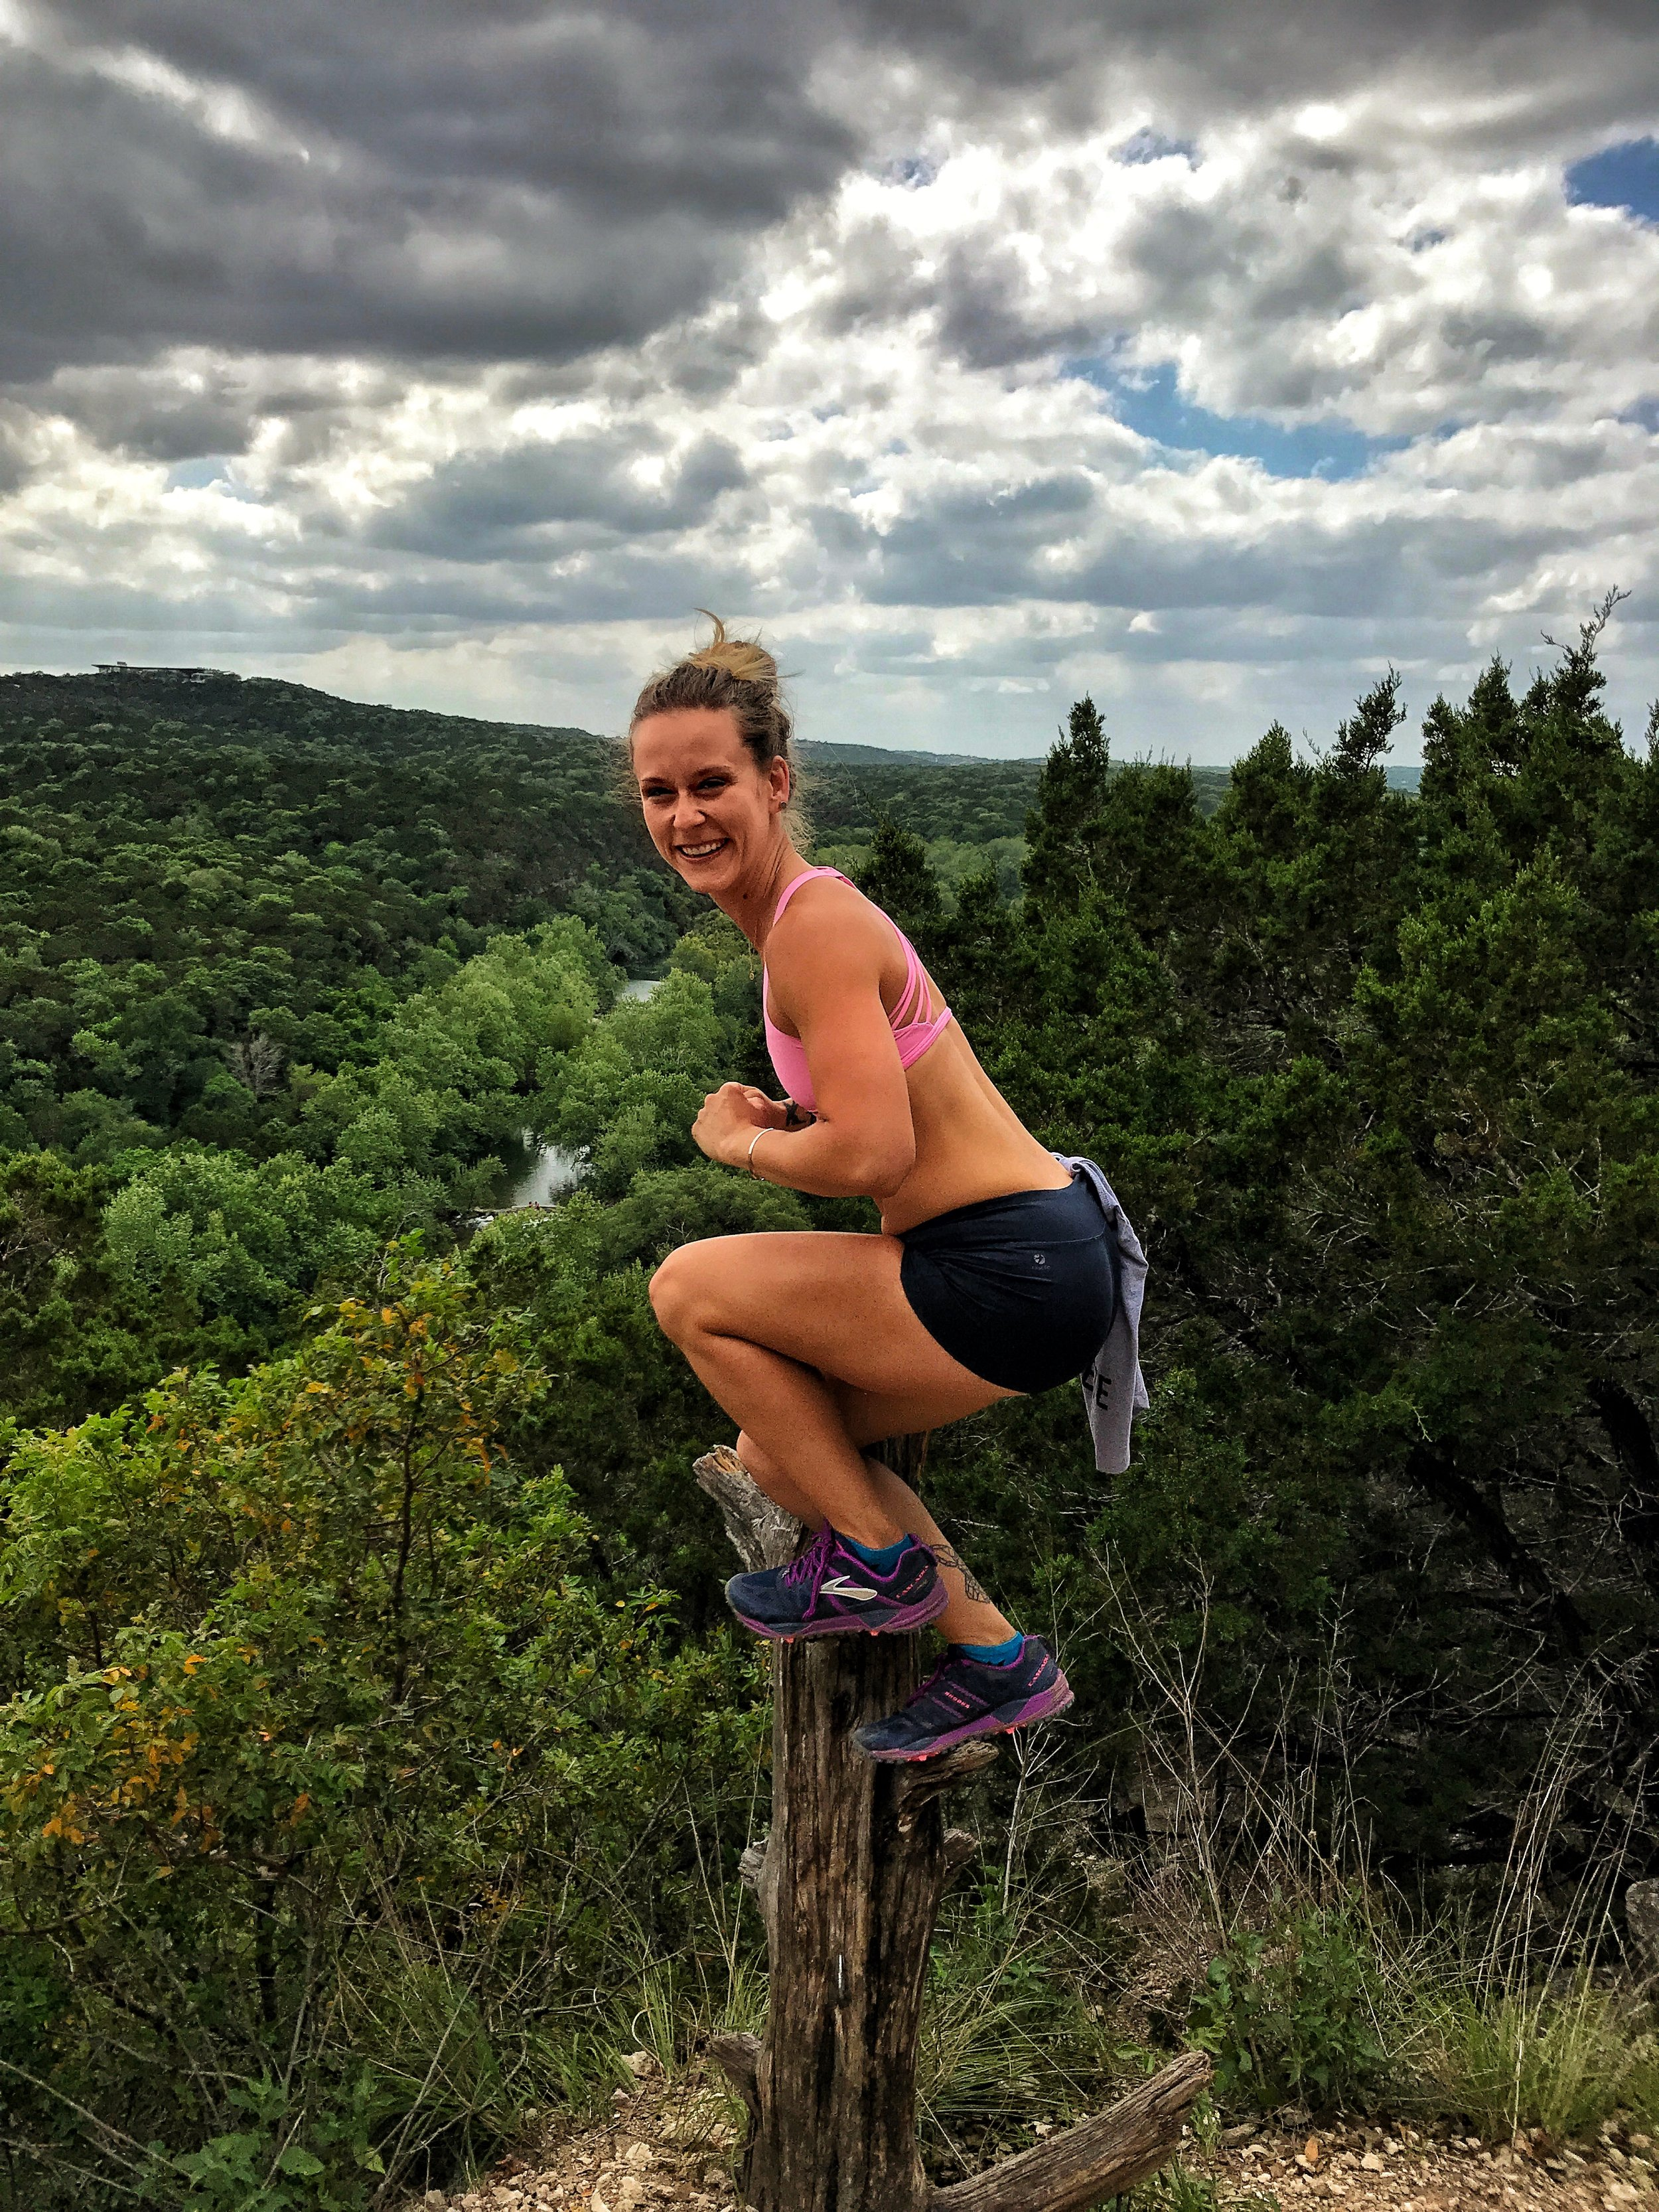 Life is also too short not to perch like a duck on a tree stump on the top of a Greenbelt outlook, laughing like an idiot.